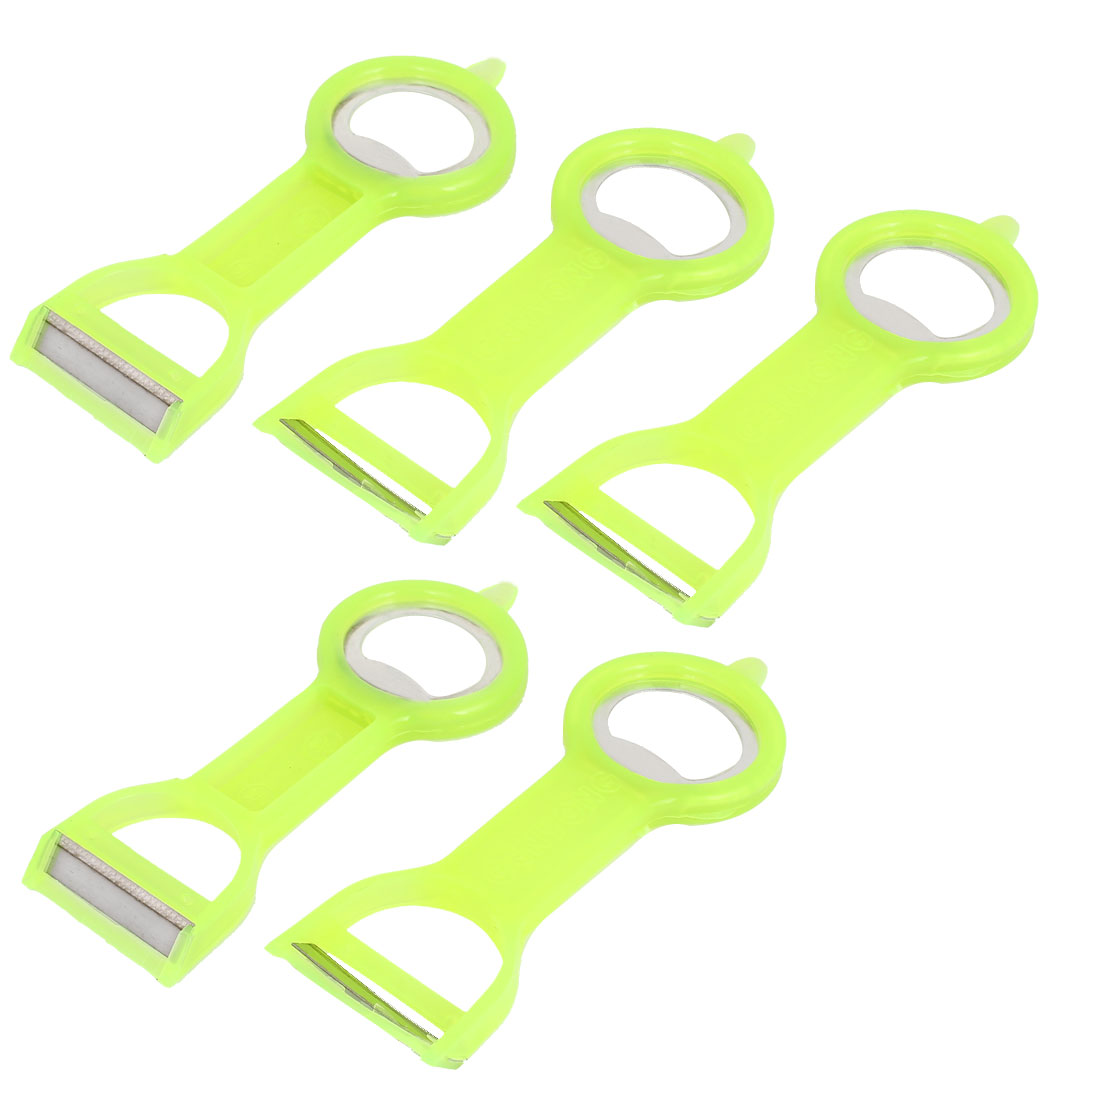 Home Kitchen Fruit Vegetable Peelers Parer Cutlery Bottle Opener 5pcs